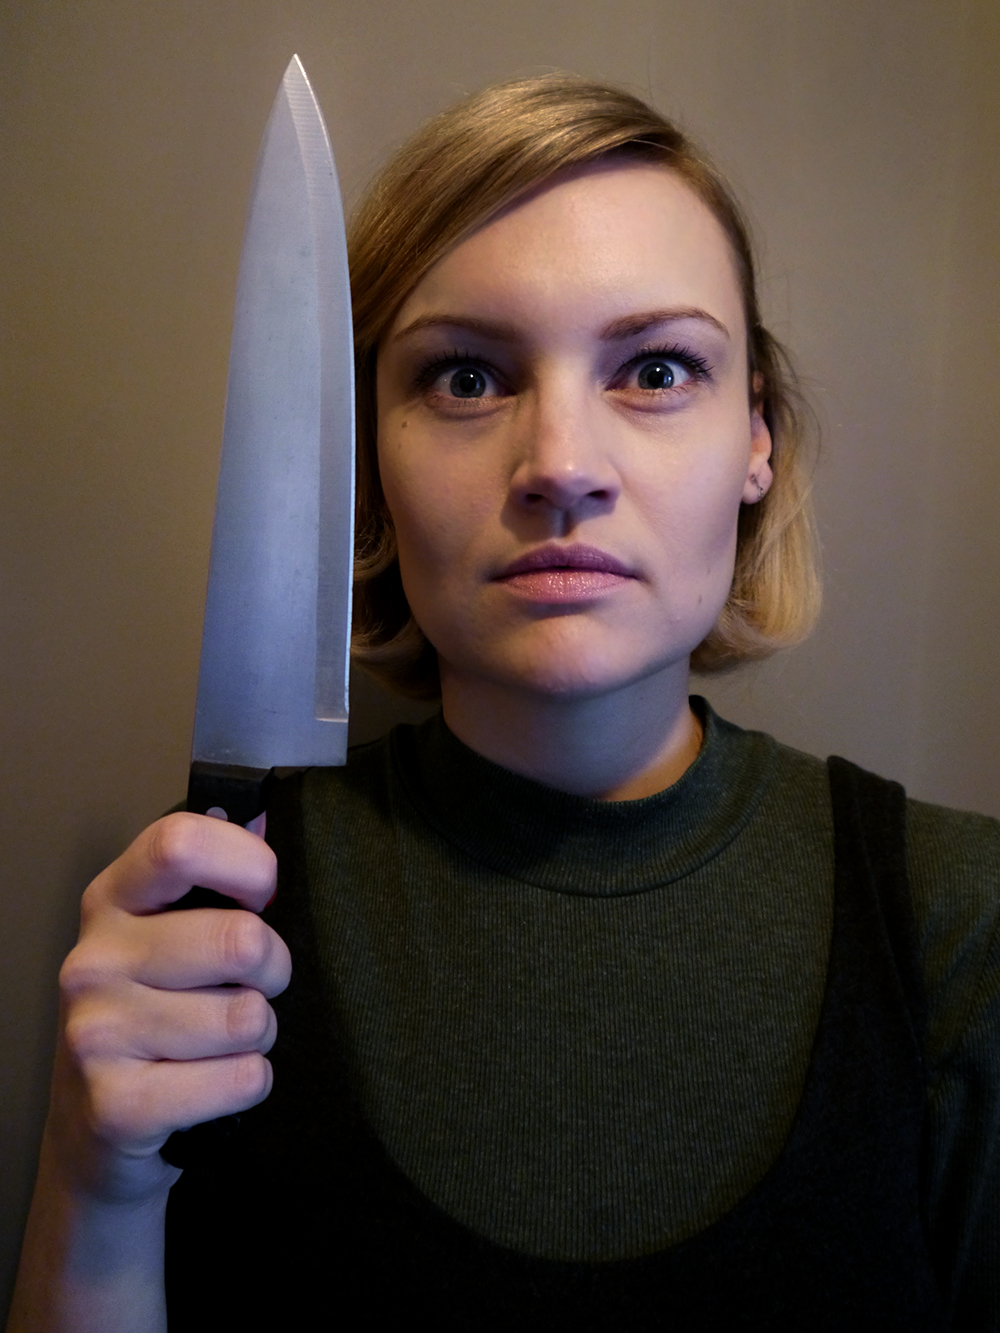 Kimberley from Wardrobe Conversations dressed as Annie Wilkes from Stephen King's Misery novel, holding a kitchen knife and looking menacing